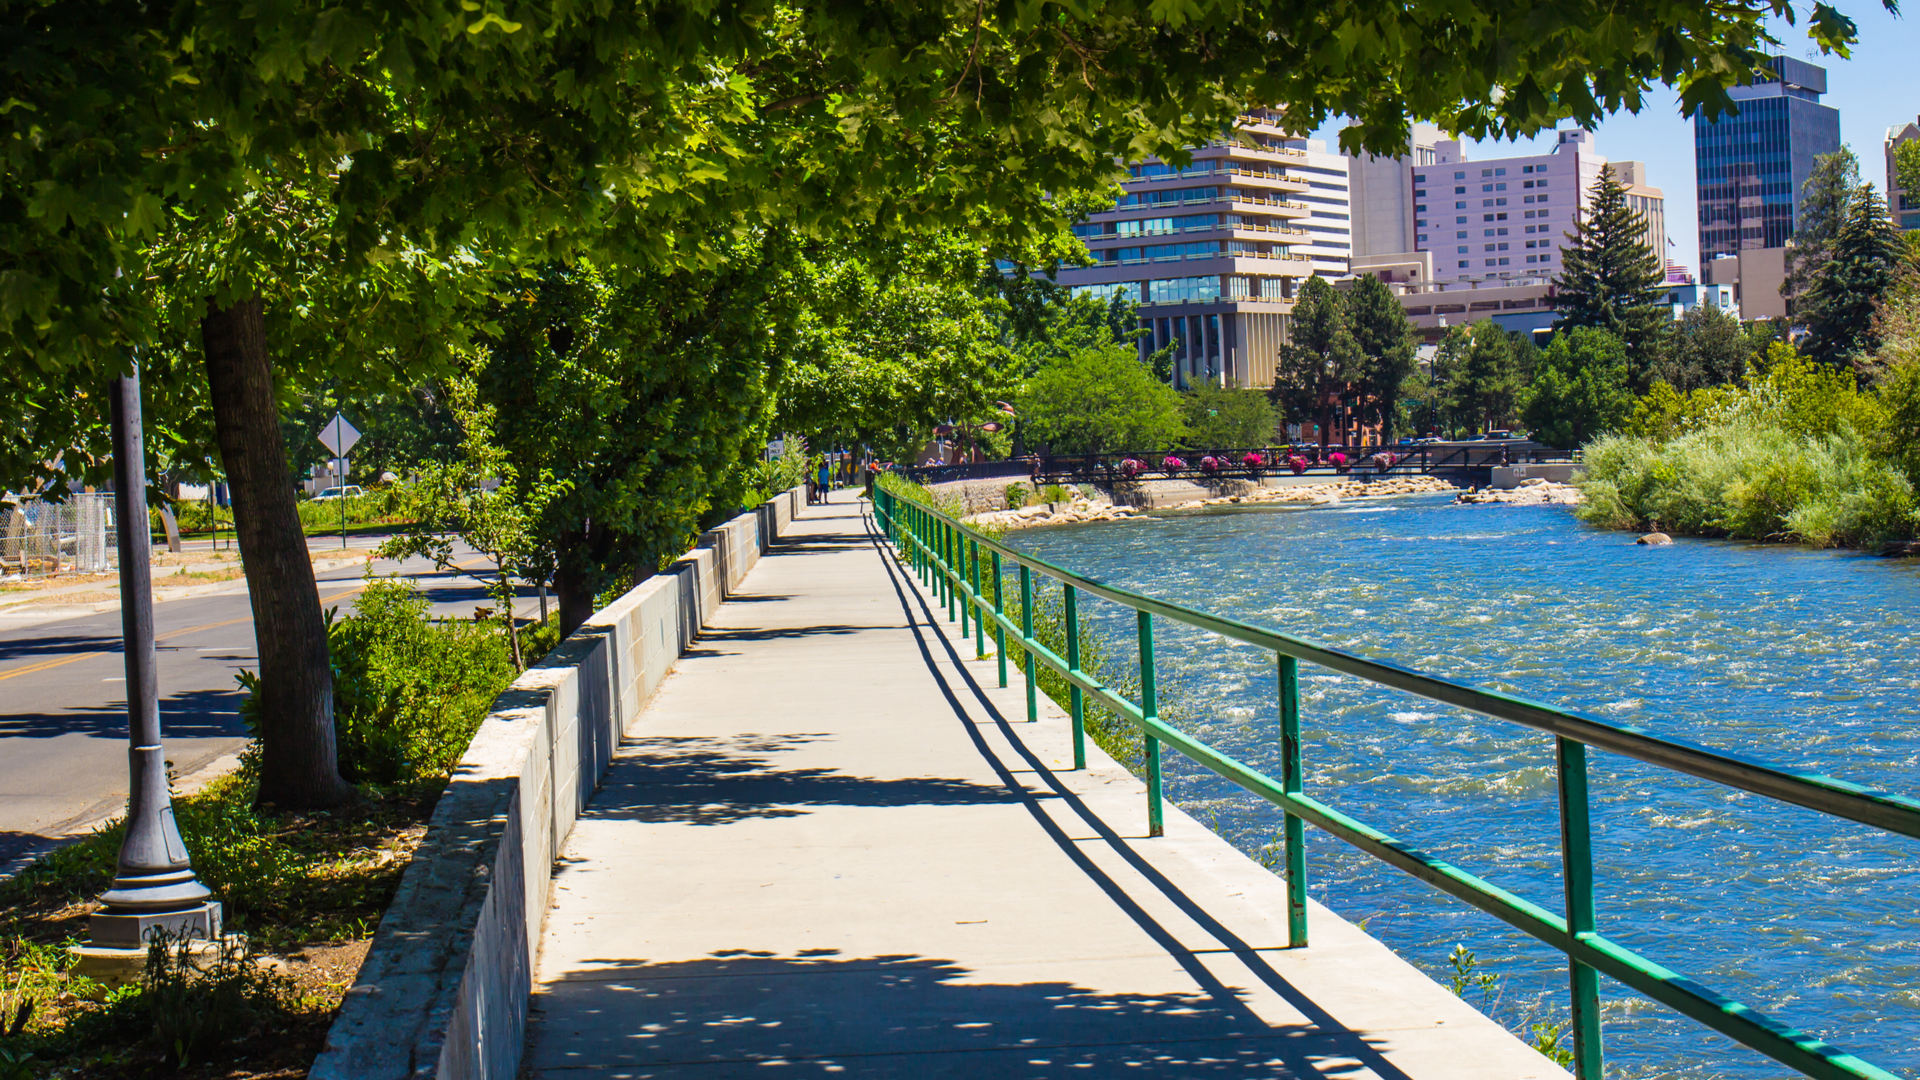 featured image showing Reno's Riverwalk